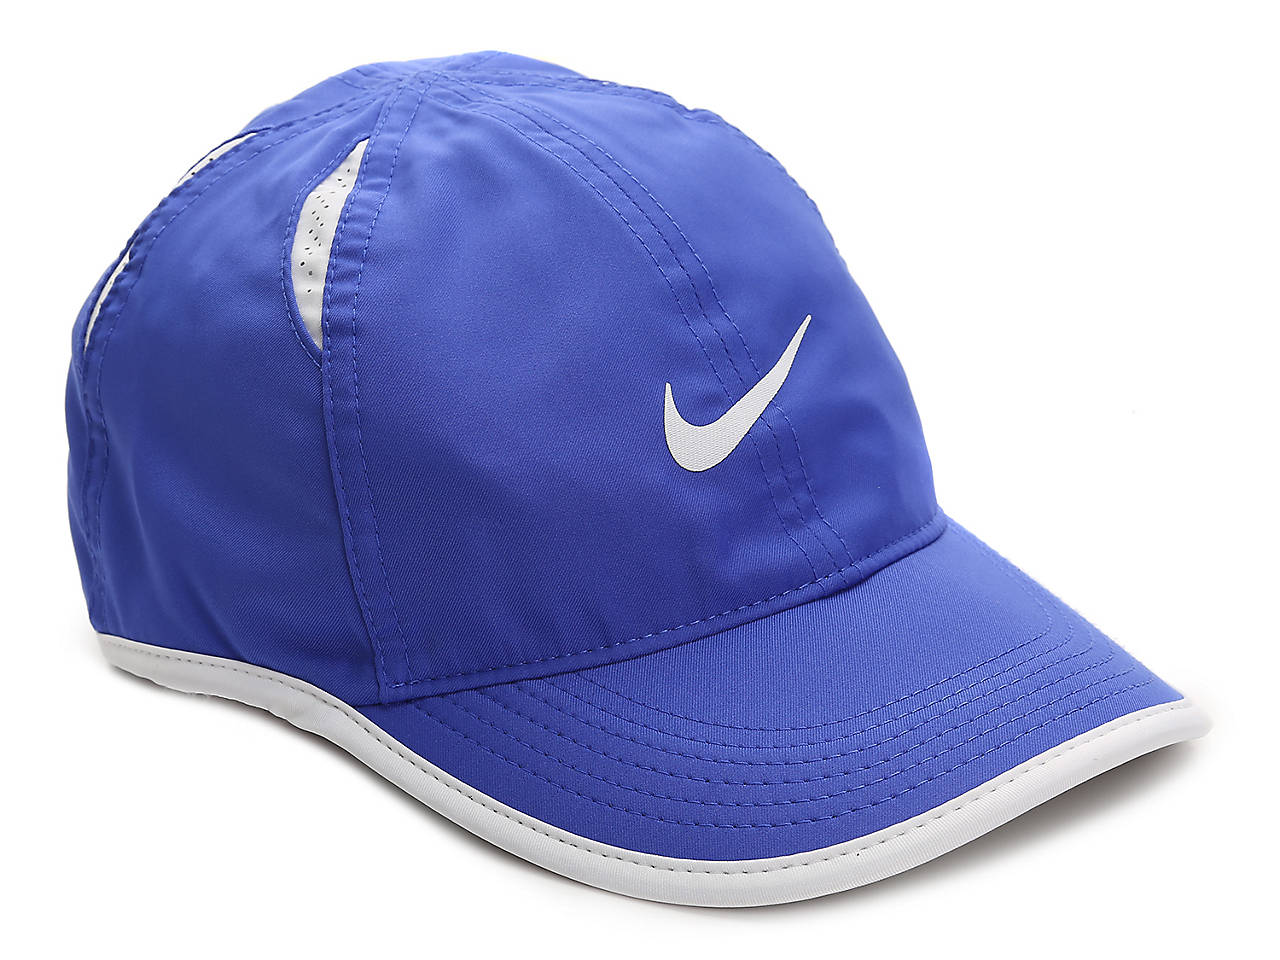 c0ead52a9c45d Nike Aerobill Featherlight Baseball Cap Women's Handbags ...